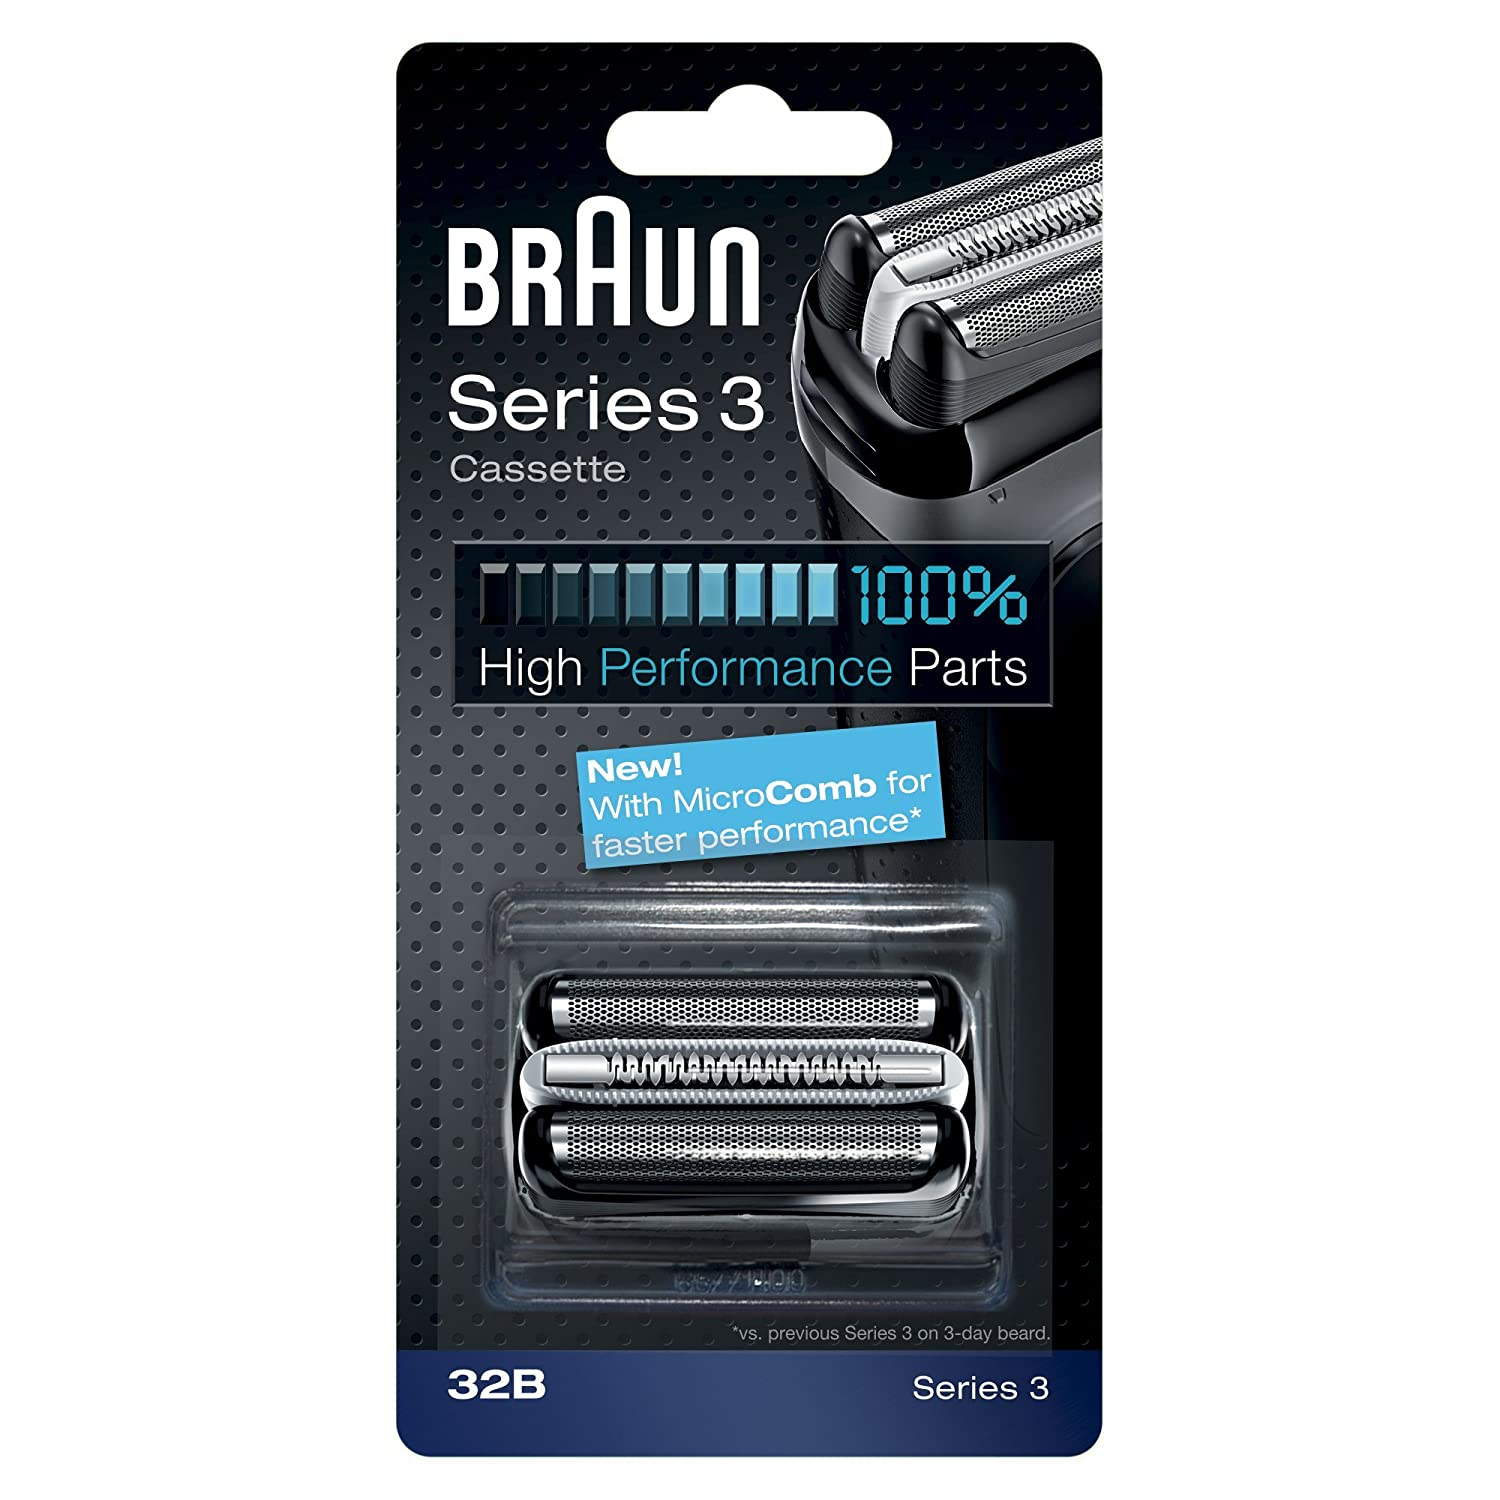 Braun 32B Series 3 Shaver Cassette Foil & Cutter with MicroComb Replacement Head 81483728